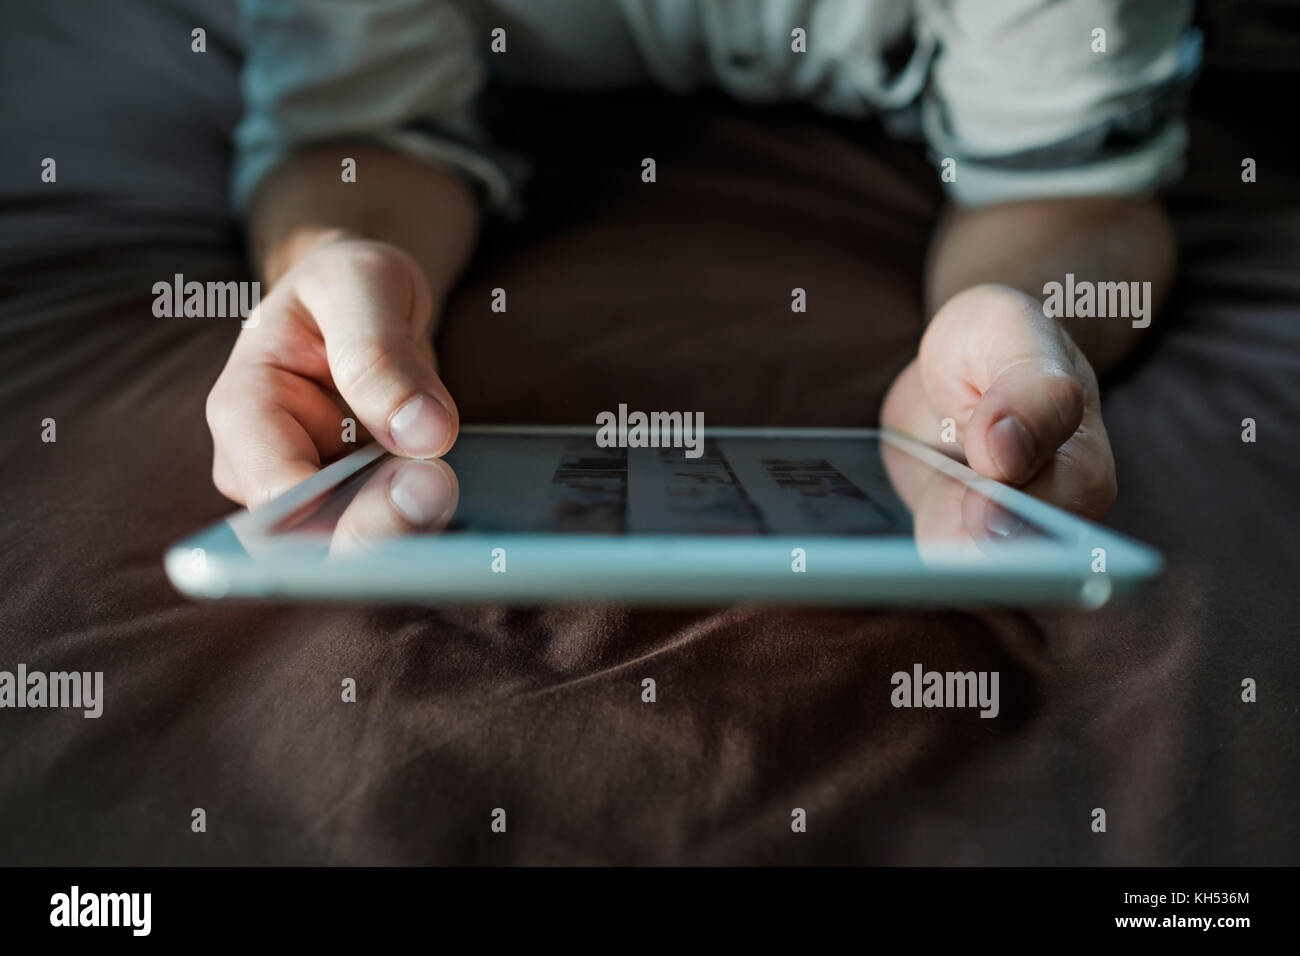 close up hands of caucasianman using tablet, connecting wifi. Up view. - Stock Image